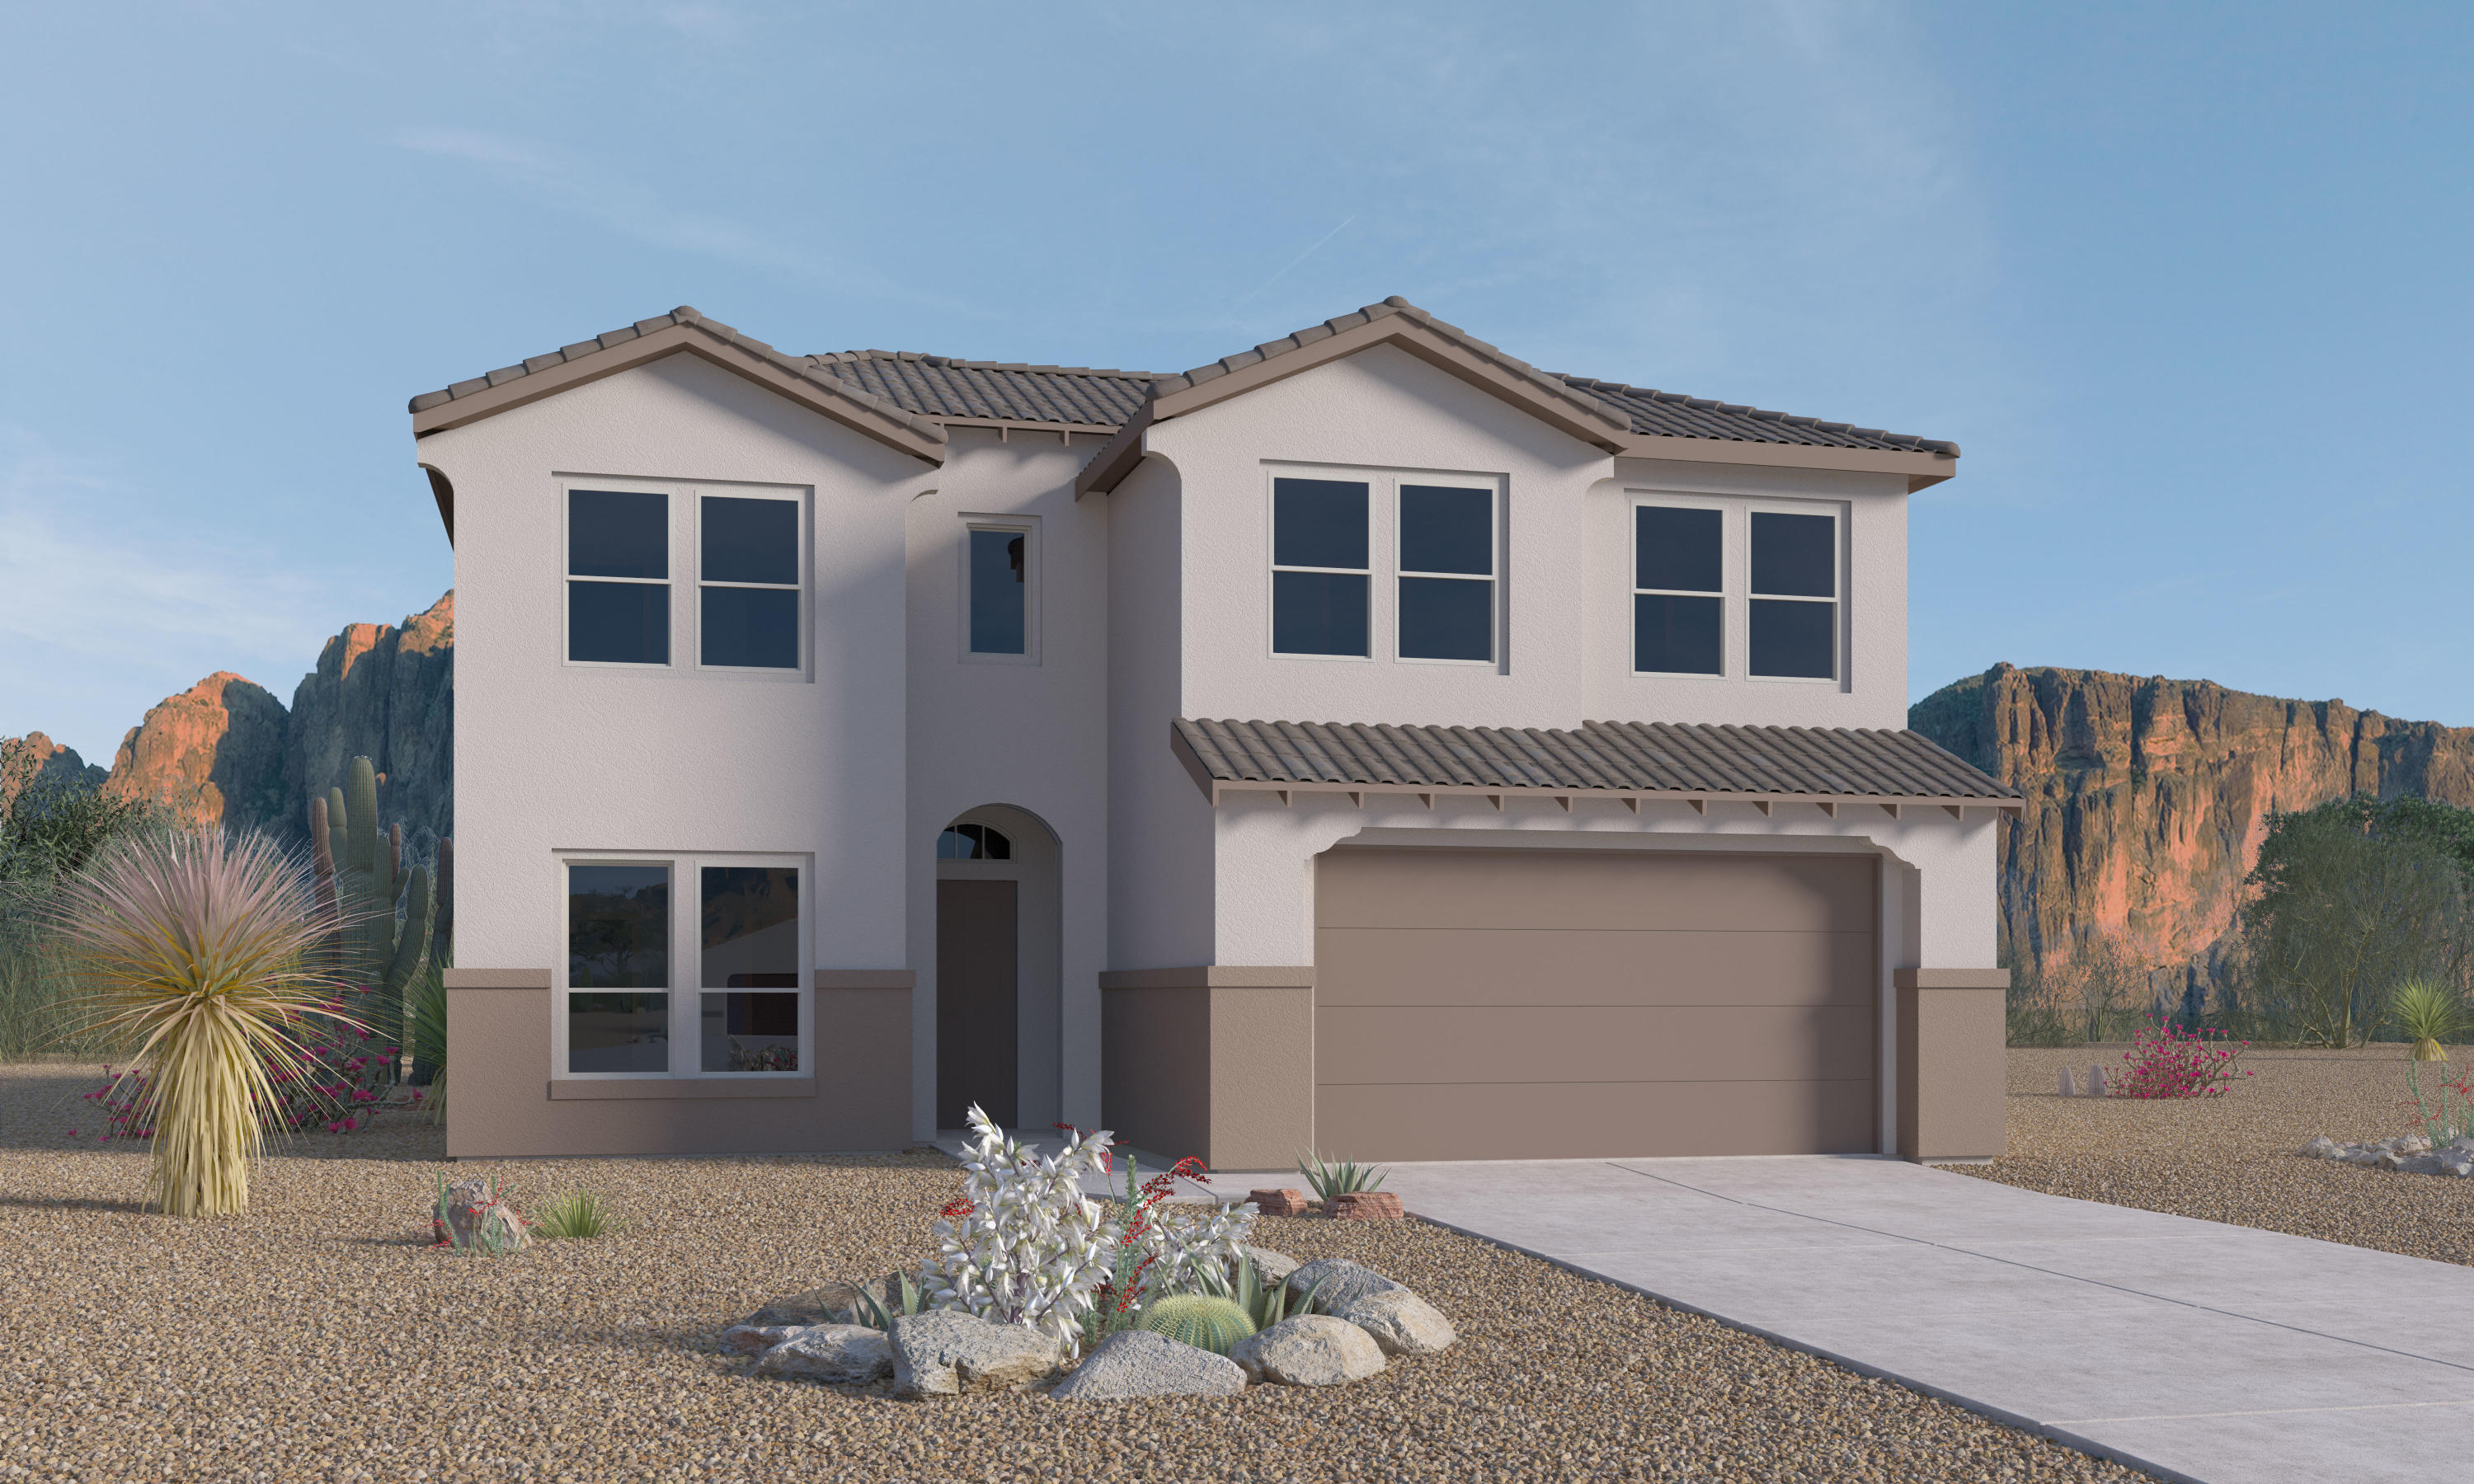 This open Zen floor plan is under construction in Mariposa. Estimated completion this year in time to enjoy the luxury lifestyle of parks, pool, fitness center and open space. Features a Gourmet Kitchen with dark cabinets  and grey subway tile backsplash, built in Stainless Appliances with 5 burner cooktop, Granite Counter tops and a large Island to gather around. Huge walk in pantry. Slate colored 18 x 18'' ceramic tile throughout home except bedrooms and Loft.  Owner suite and one bedroom down, with loft and 3 bedrooms upstairs.  Tile walk in shower in owner suite with double sinks. 9 ft Sliding glass door off of the Family room leads to covered patio.  Big 3rd car tandem garage for cars or toys.   Just 5 minute walk to pools and trails. Model home open daily to see specs.